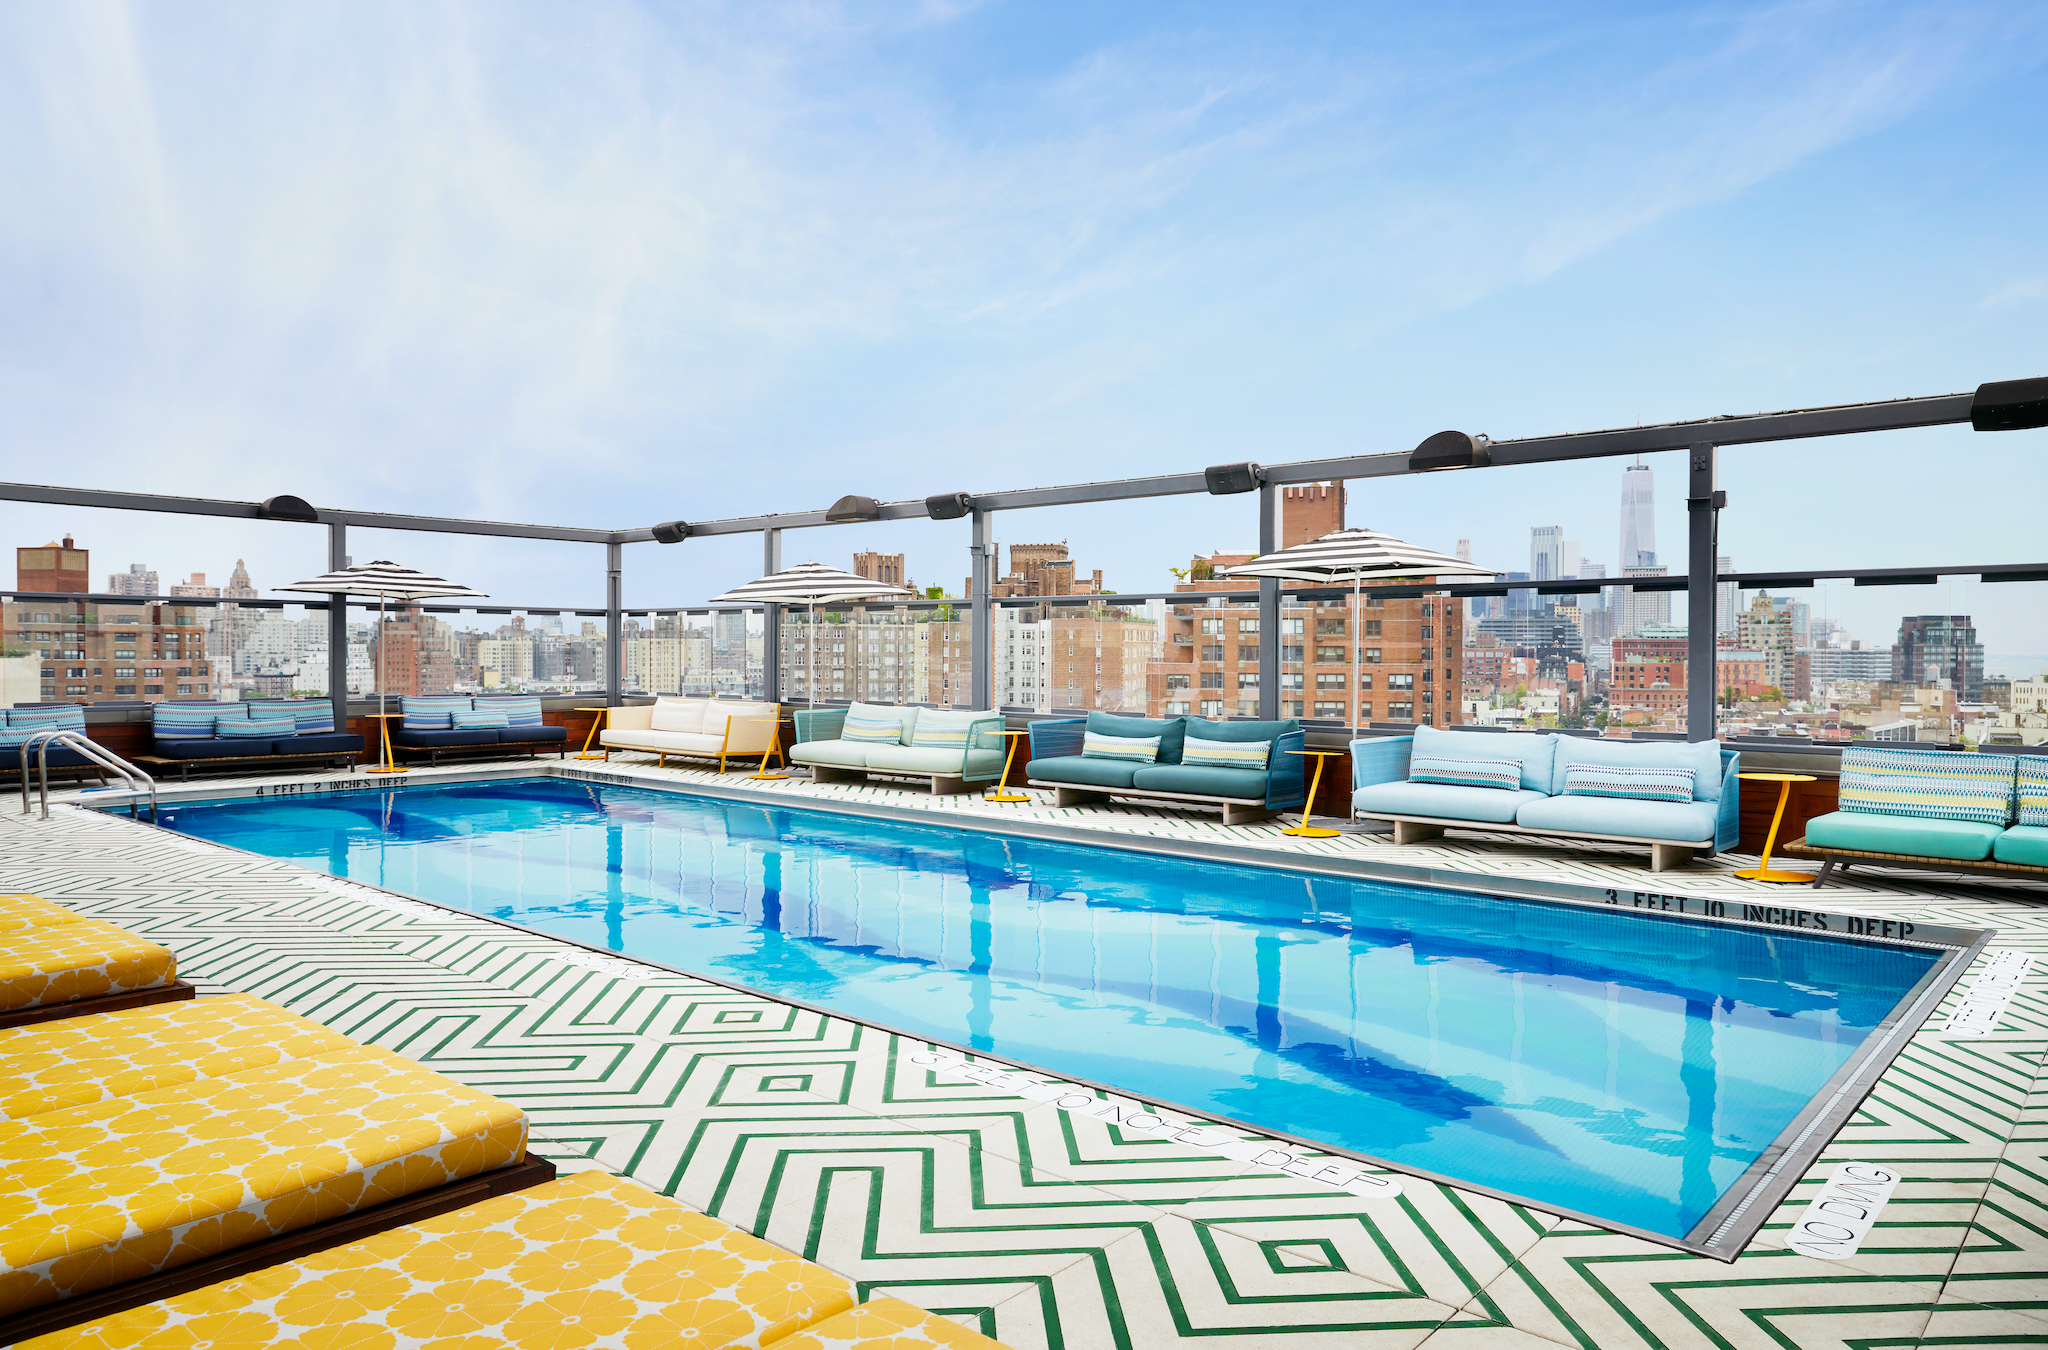 Outdoor furniture is set up around a pool with a patterned floor. In the background, a city skyline is visible.